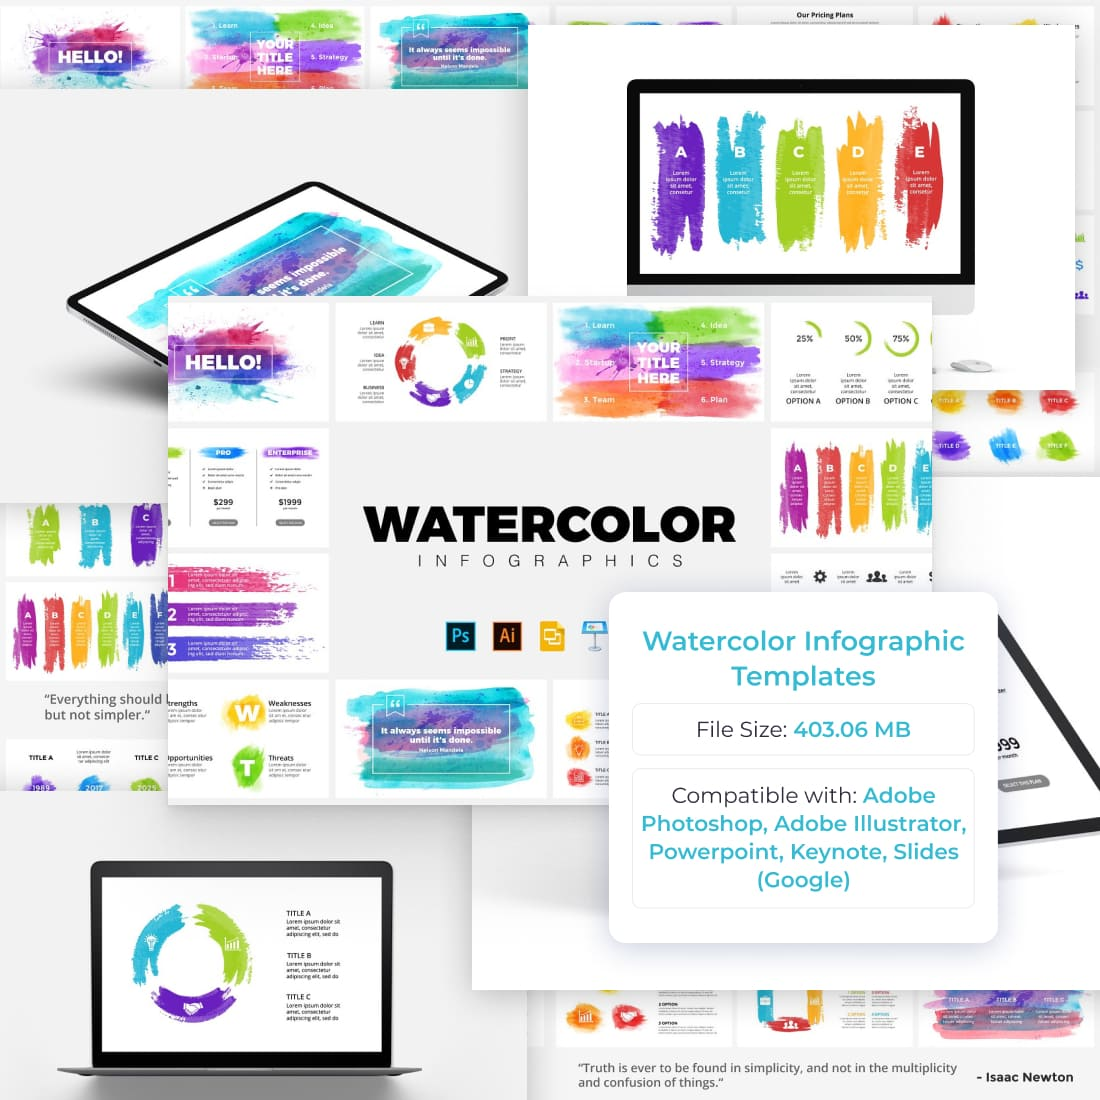 Watercolor Infographic Templates by MasterBundles.